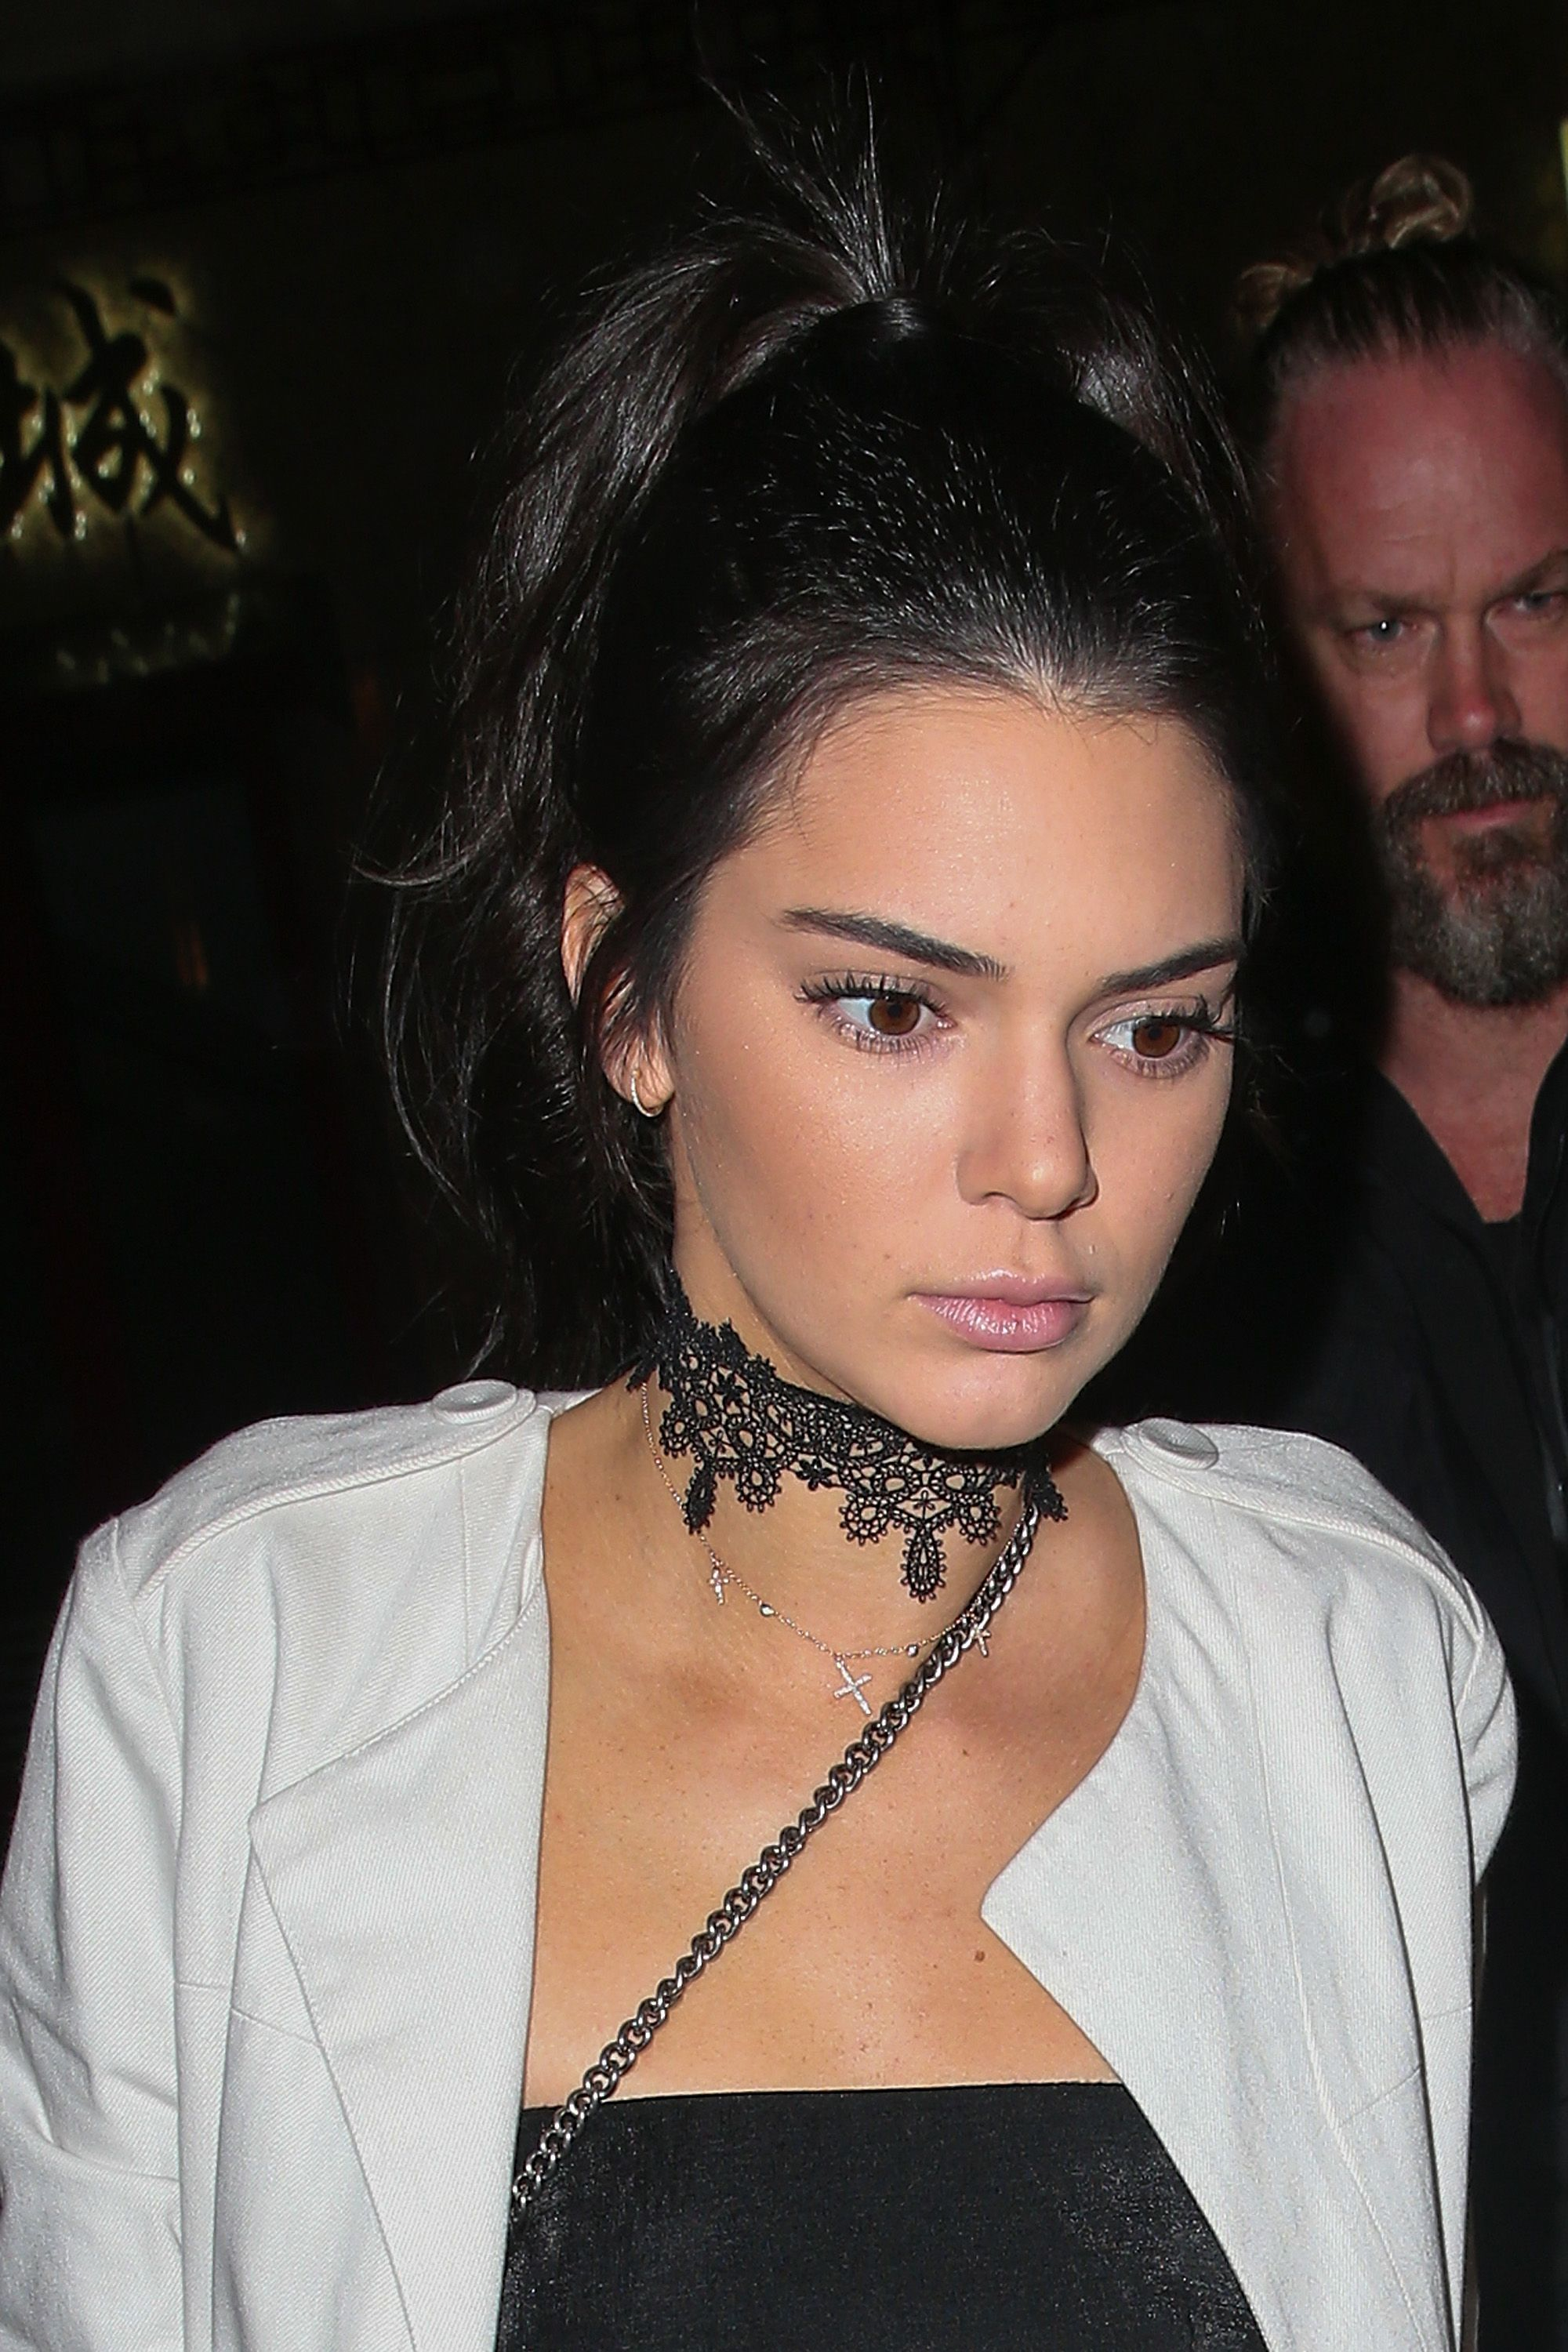 Kendall Jenner now has an edgy lip tattoo